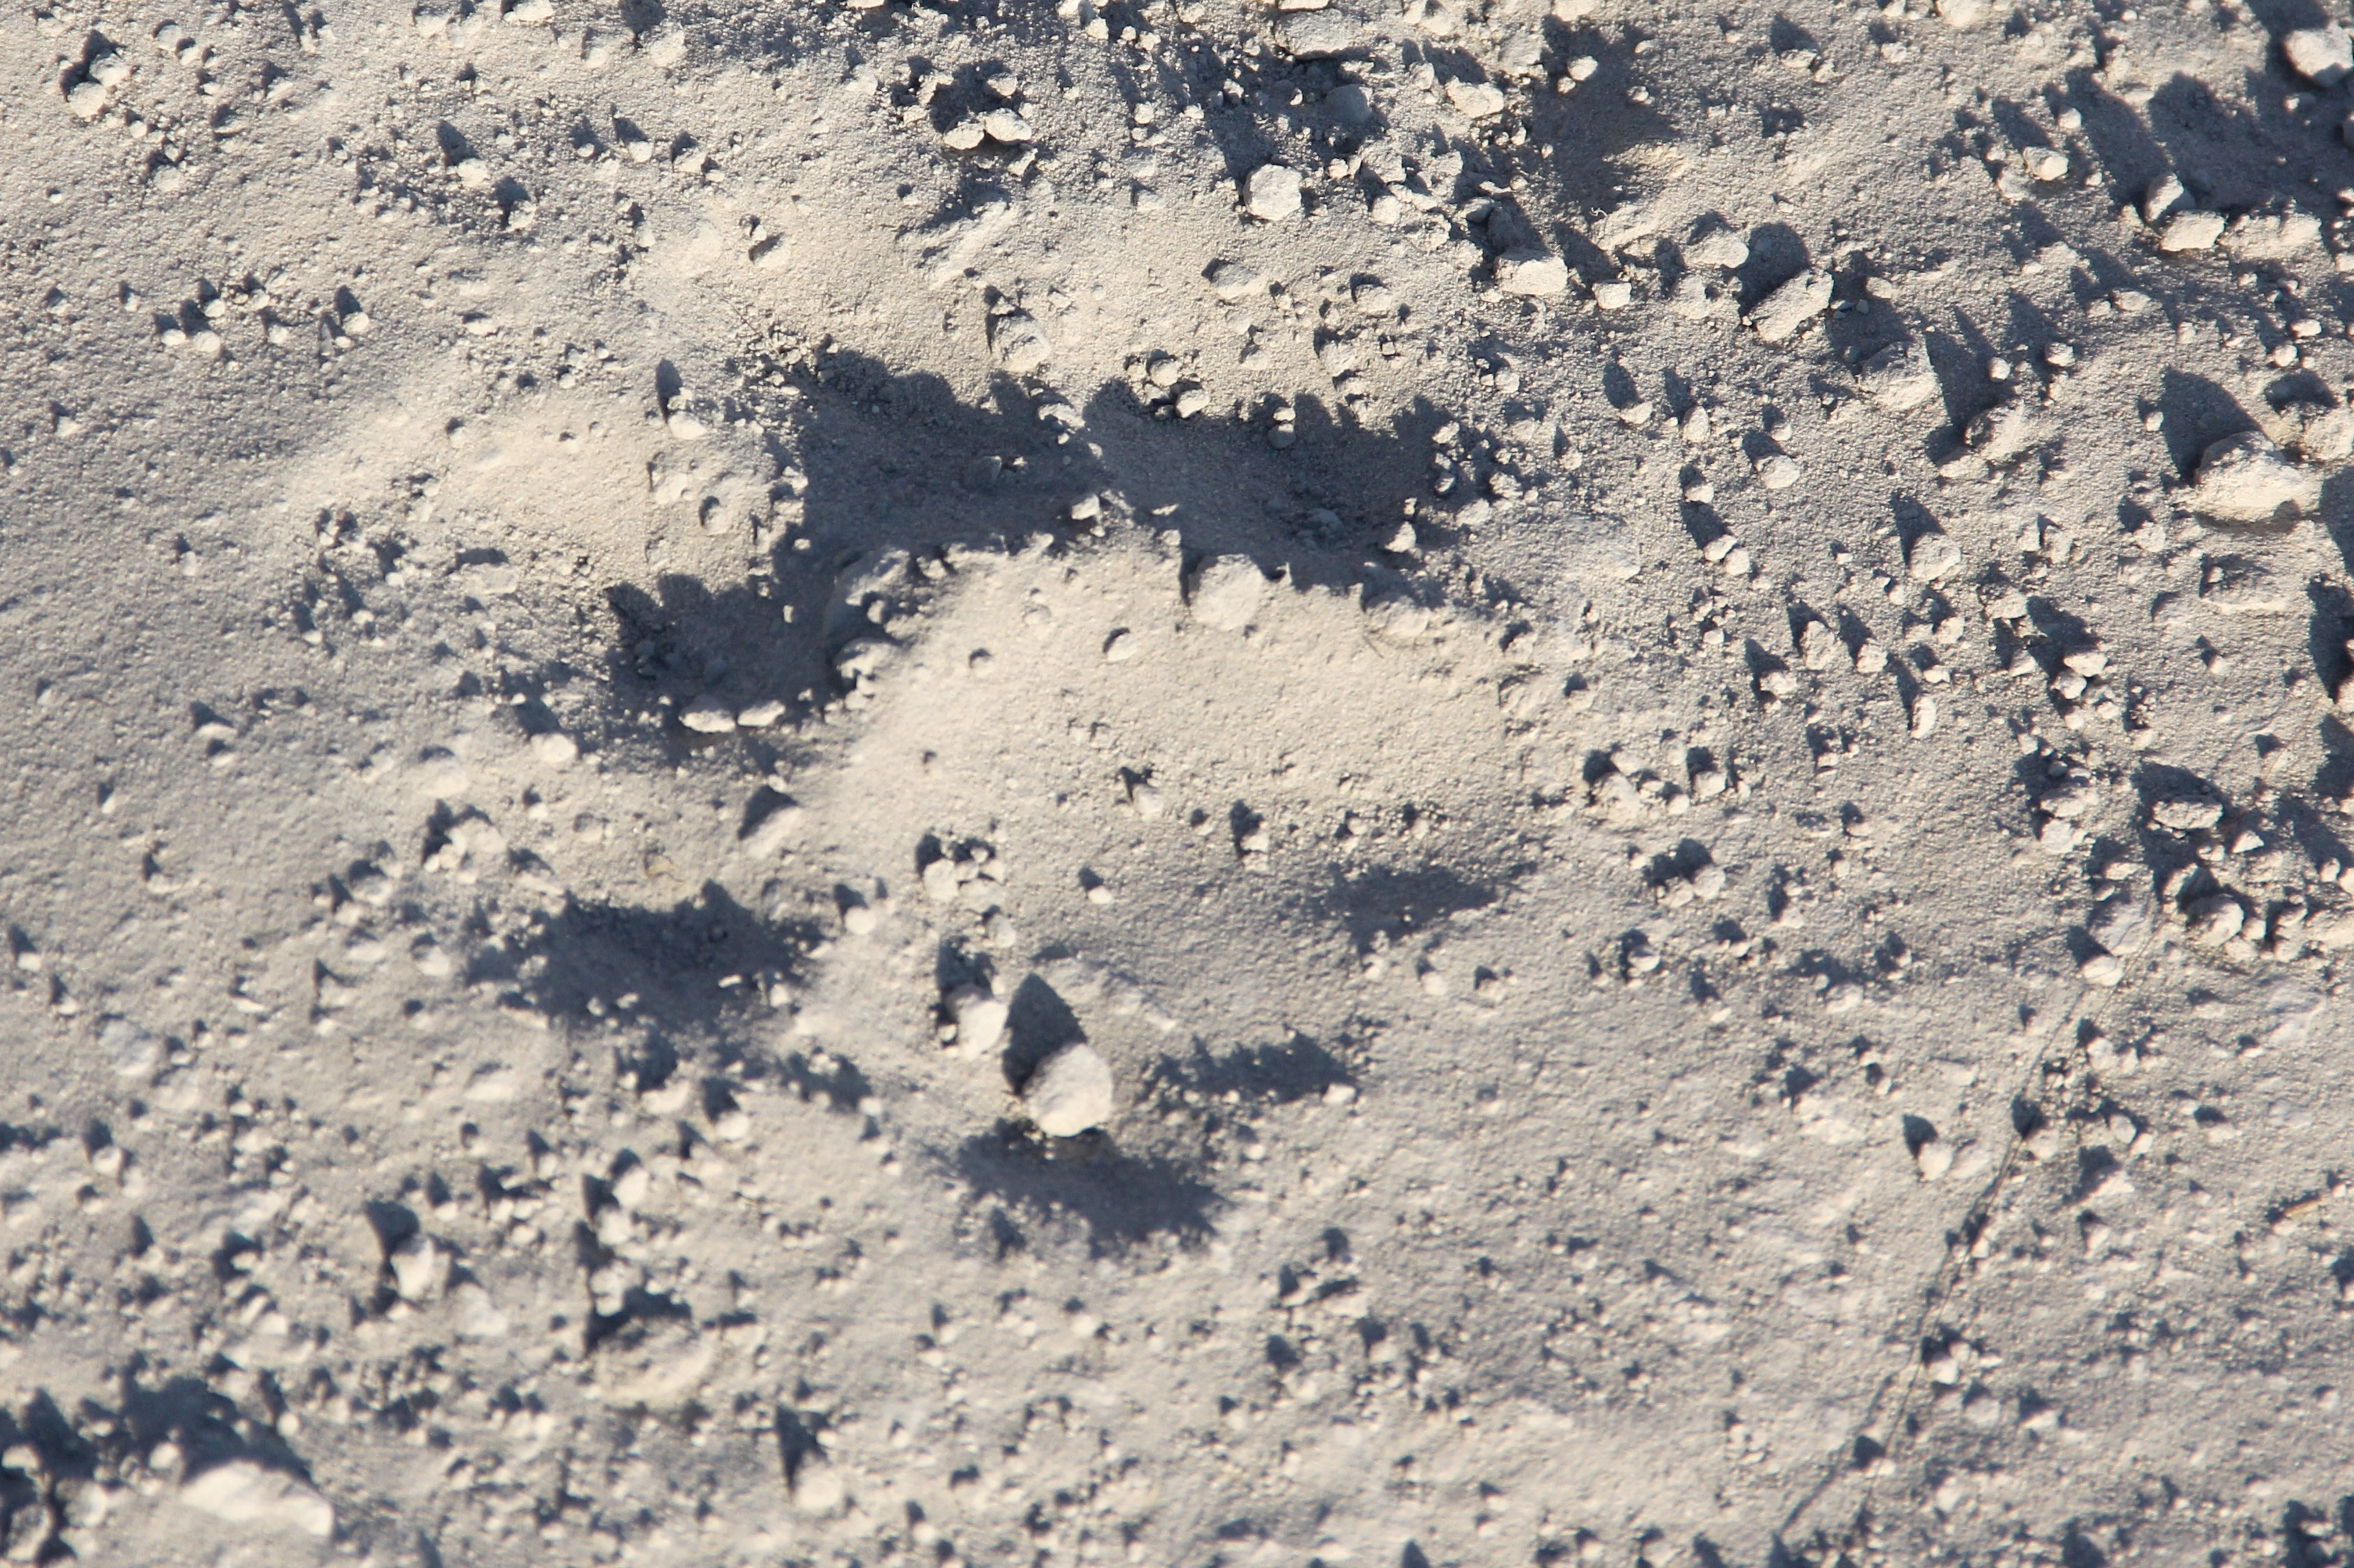 Paw prints in the Delta